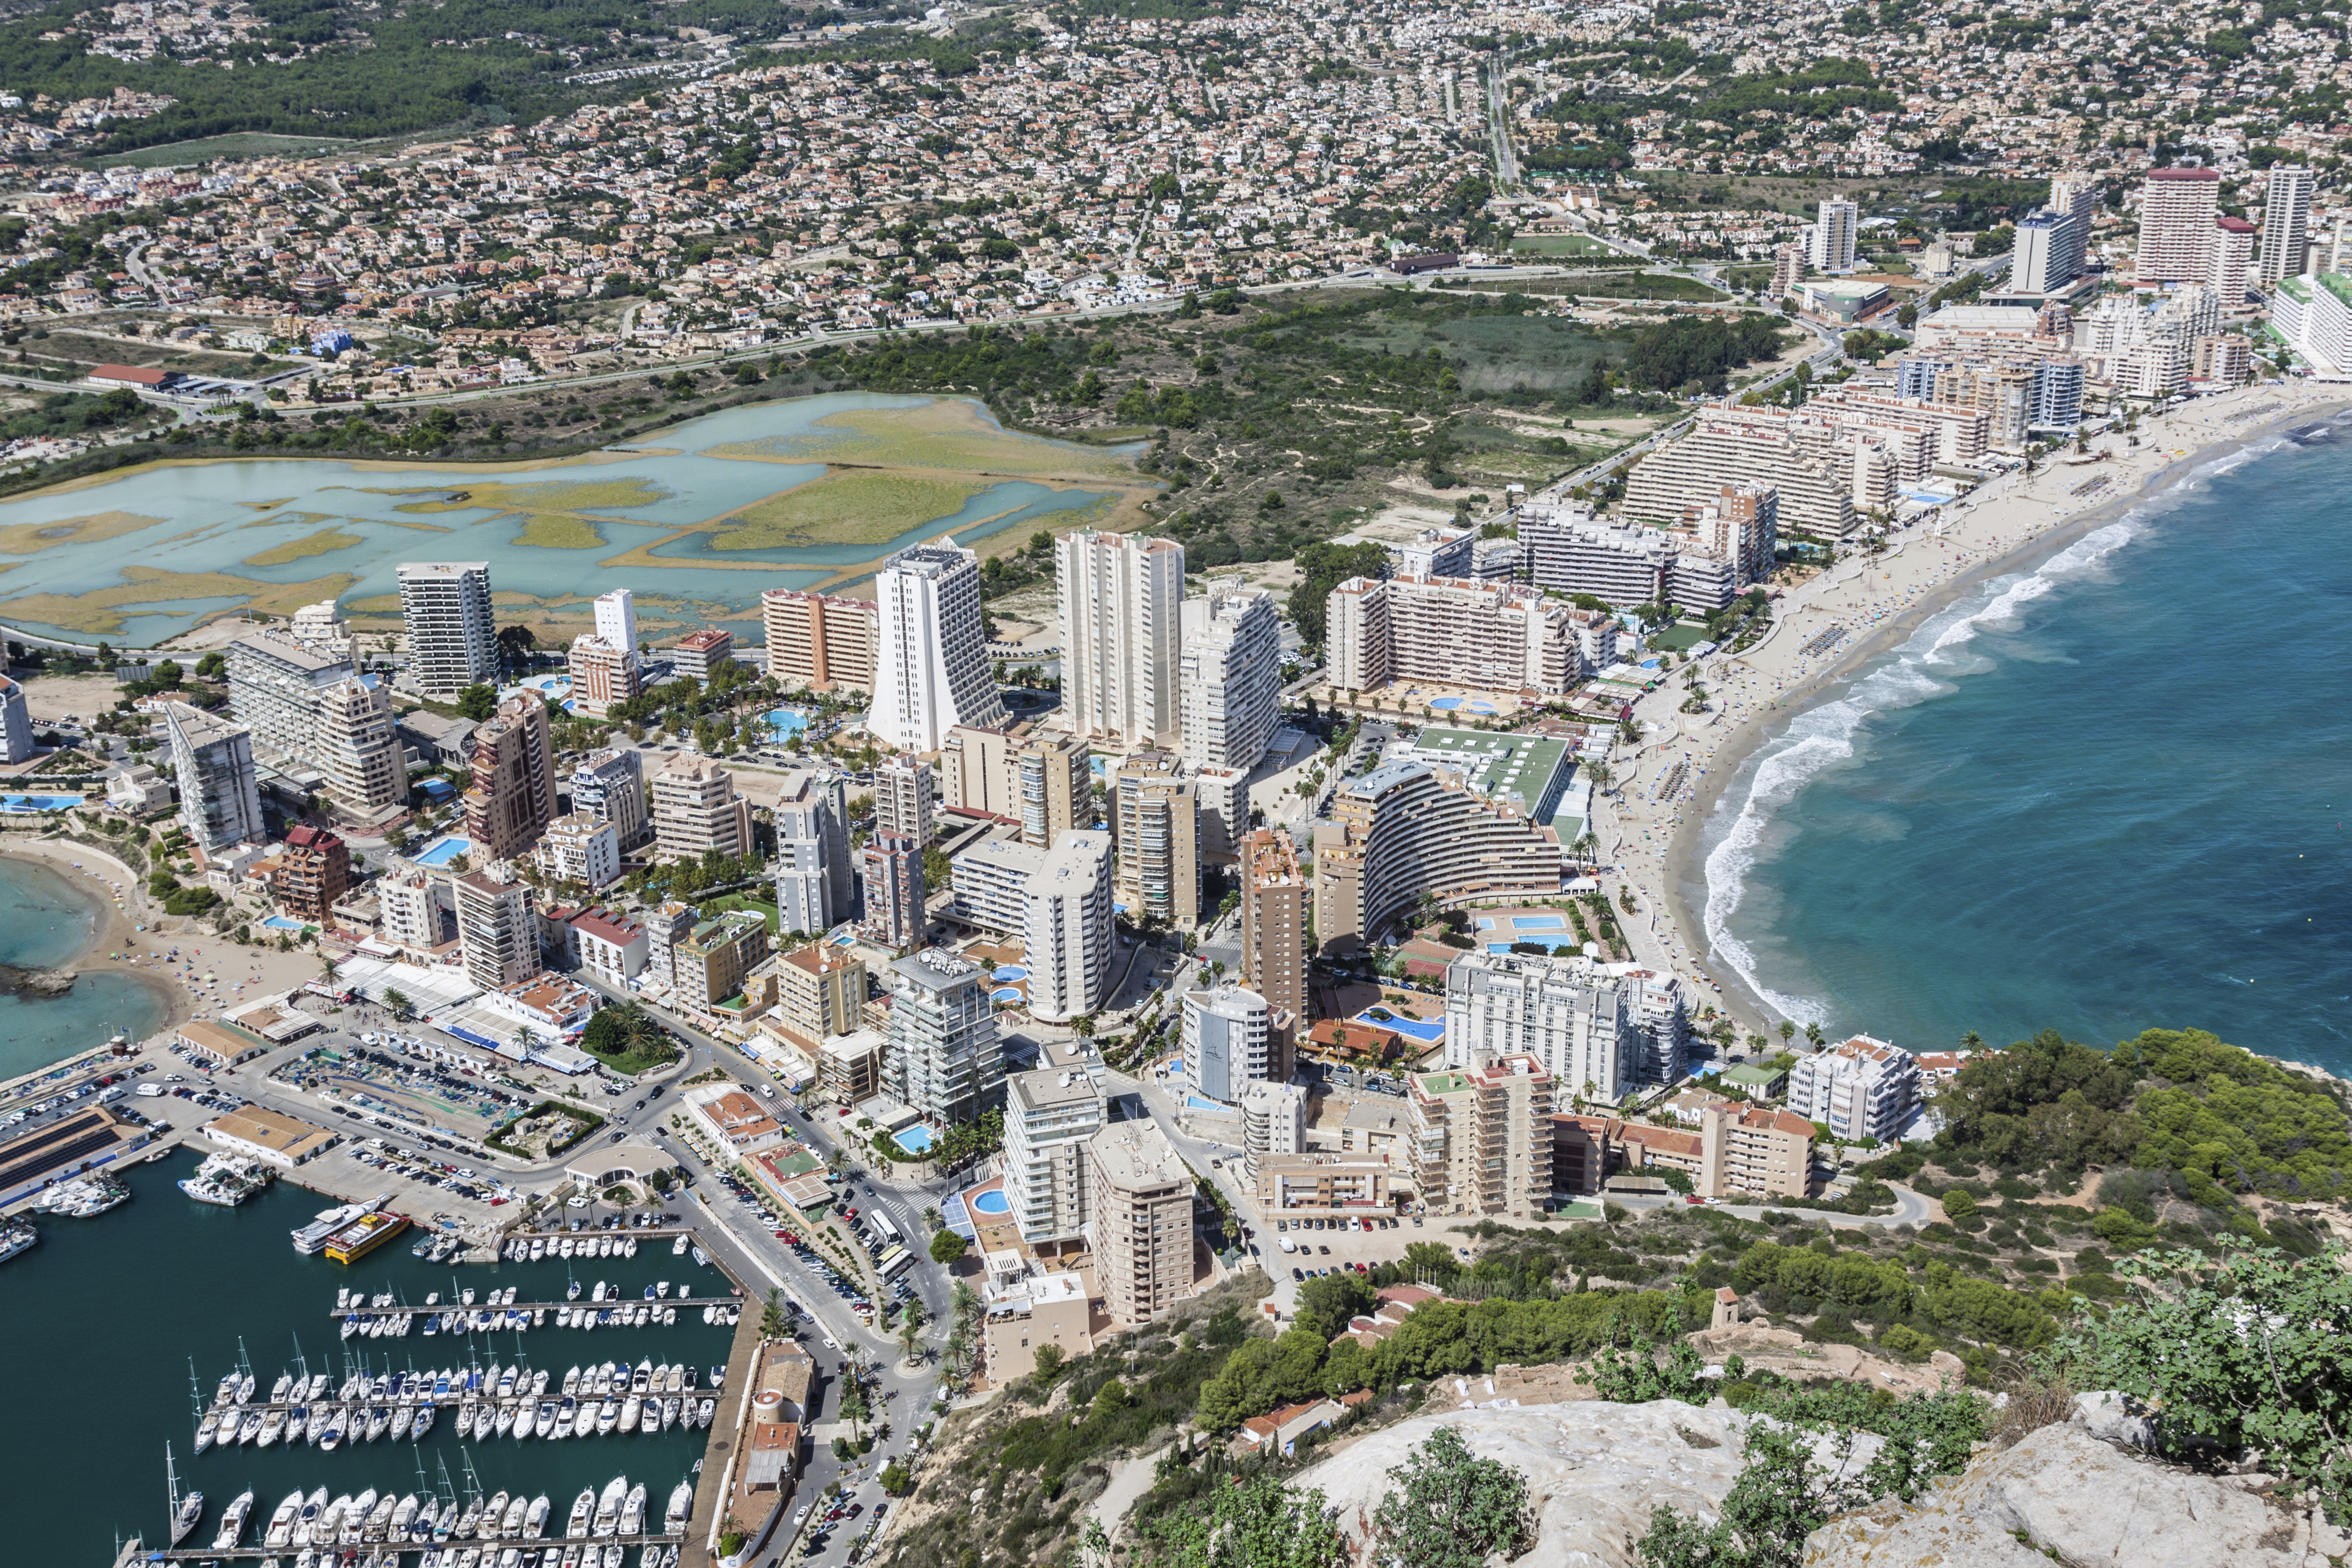 Calpe Spain  City new picture : Published April 14, 2014 at 4651 × 3101 in Destination: Calpe, Spain